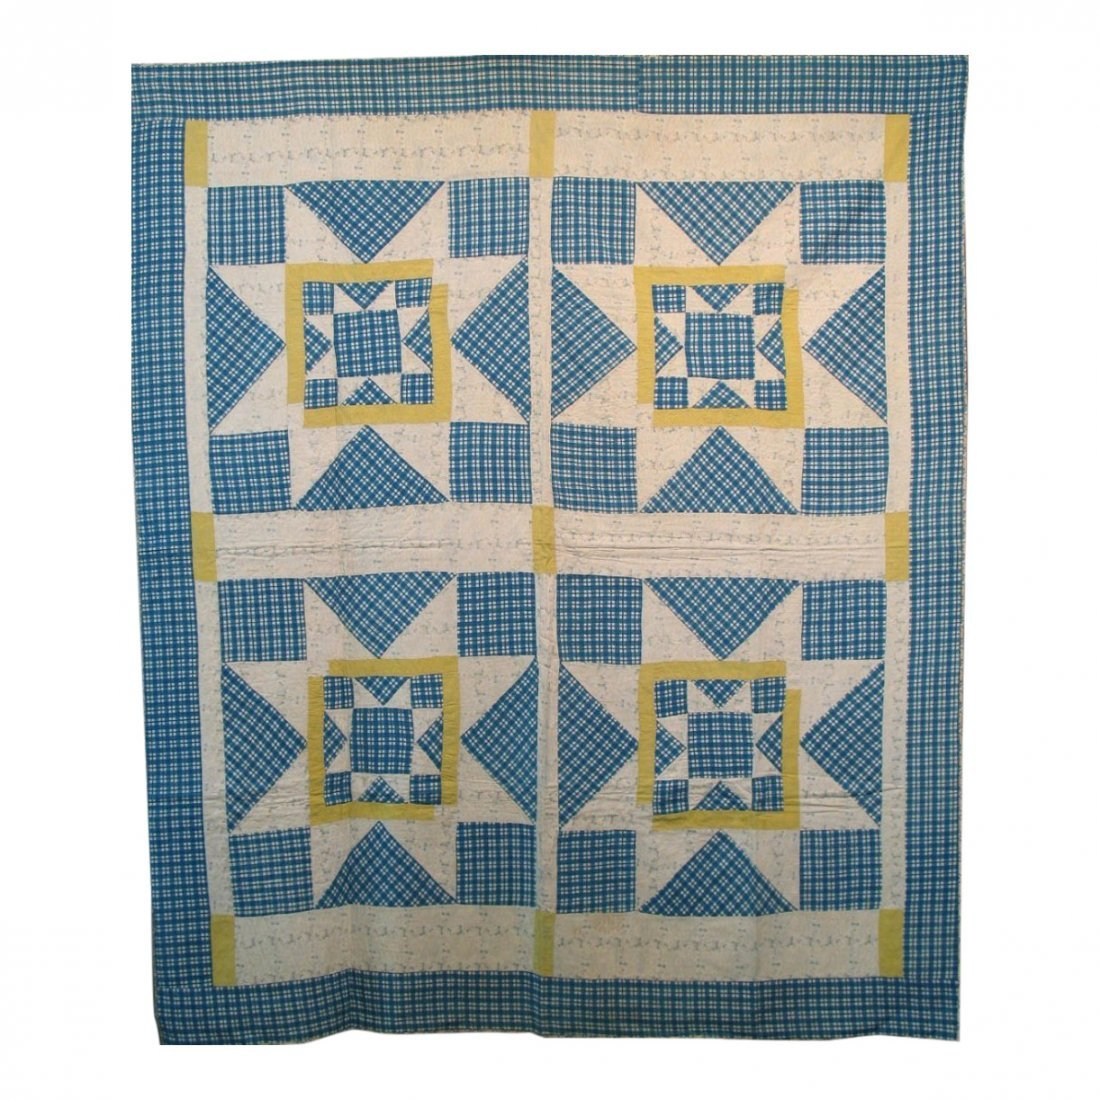 20th C Rising Star Pieced Quilt